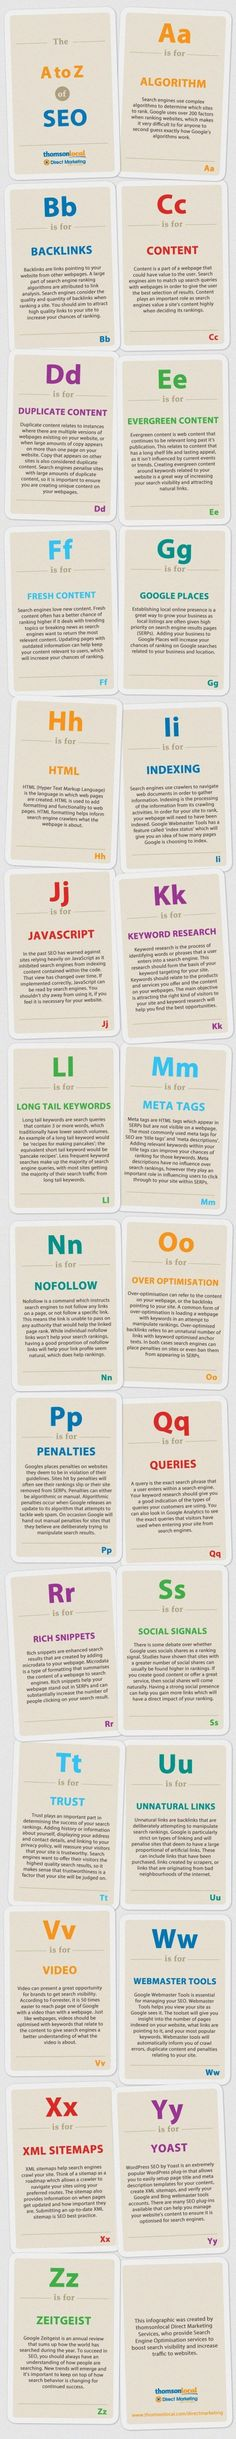 The A to Z of #SEO. Do you find yourself struggling to understand what SEO (or Search Engine Optimisation) is? If so, this really helpful infographic will help you to understand the basics of SEO and what all the terms and techniques mean. #infographic